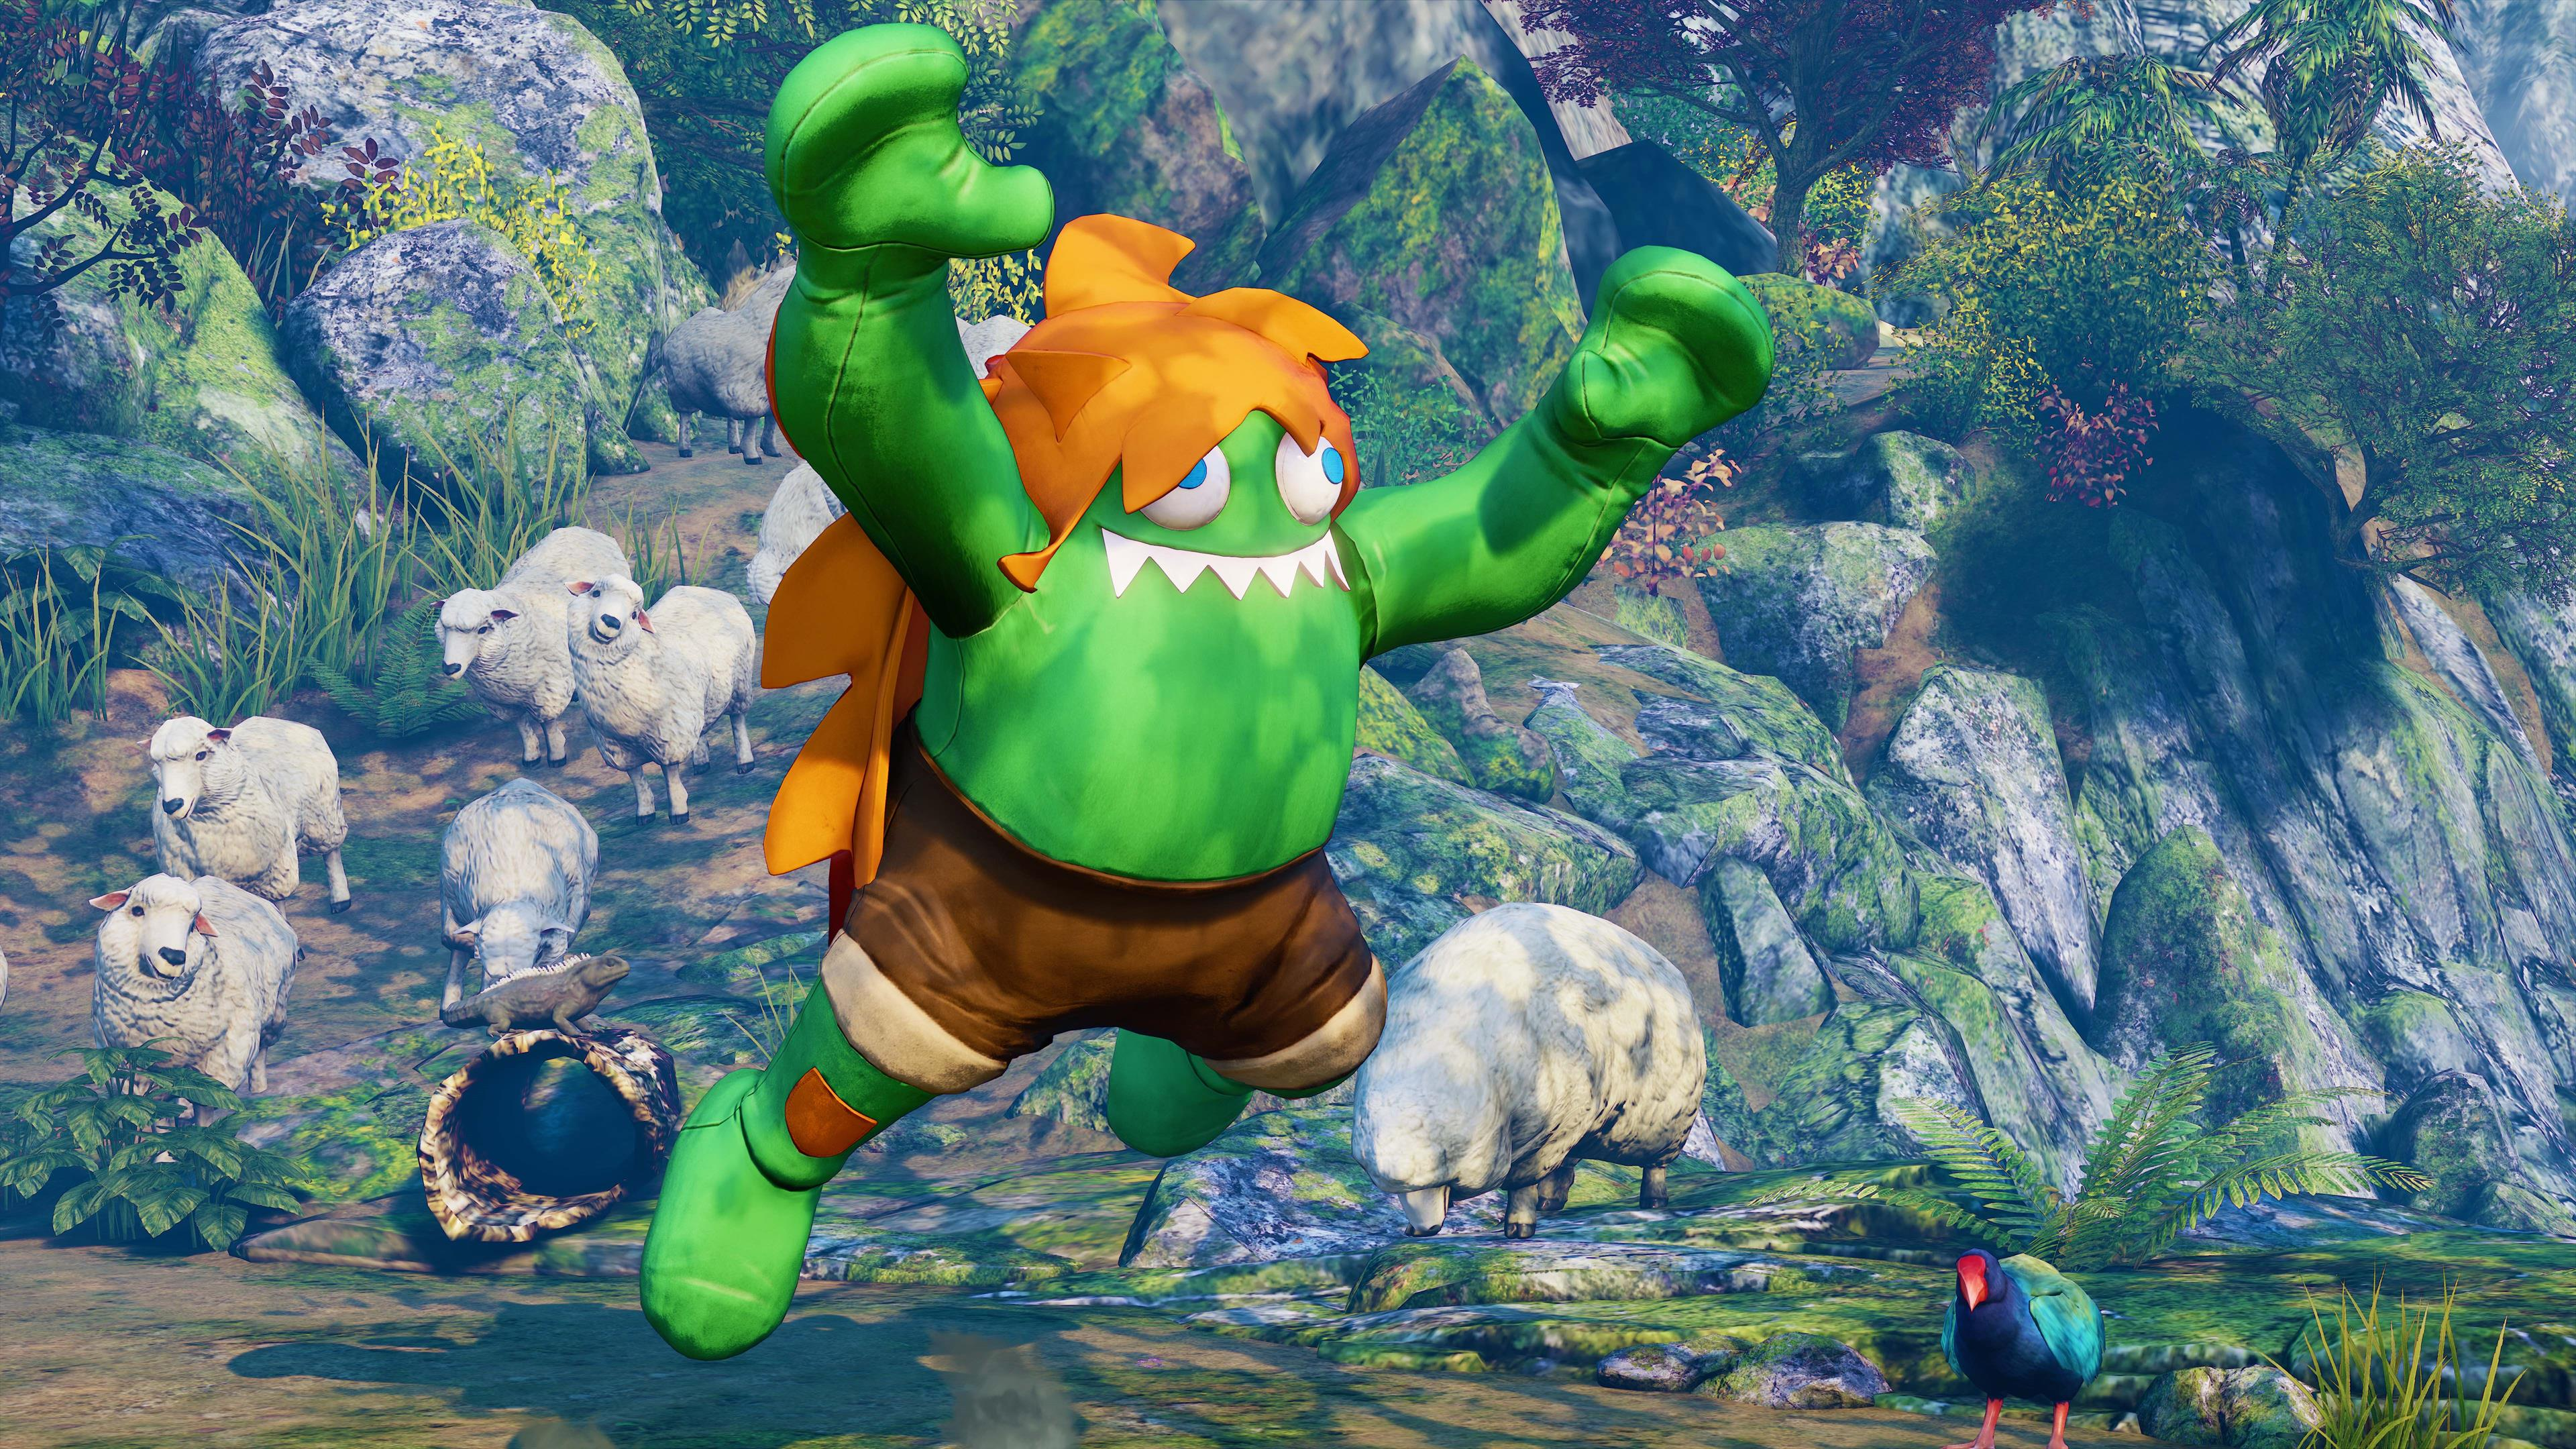 Street Fighter V: Arcade Edition Blanka Release Date, Trailer Revealed